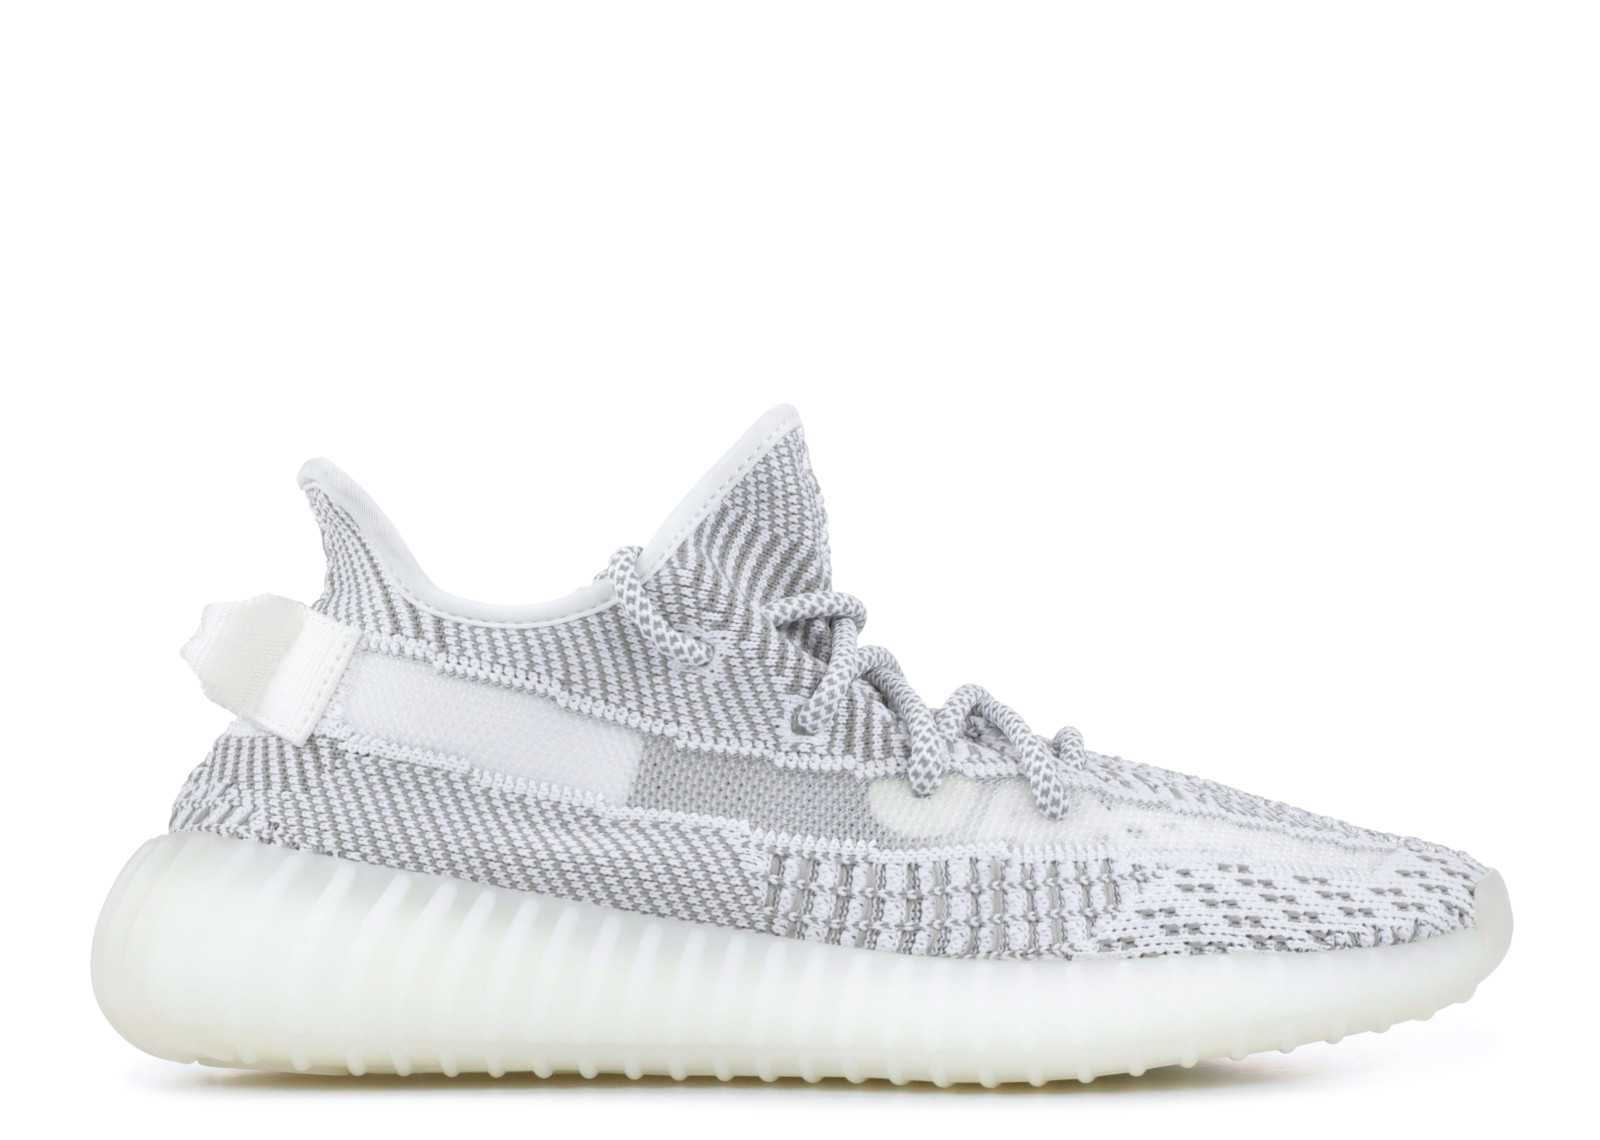 YEEZY BOOST 350 V2 Static - 1:1